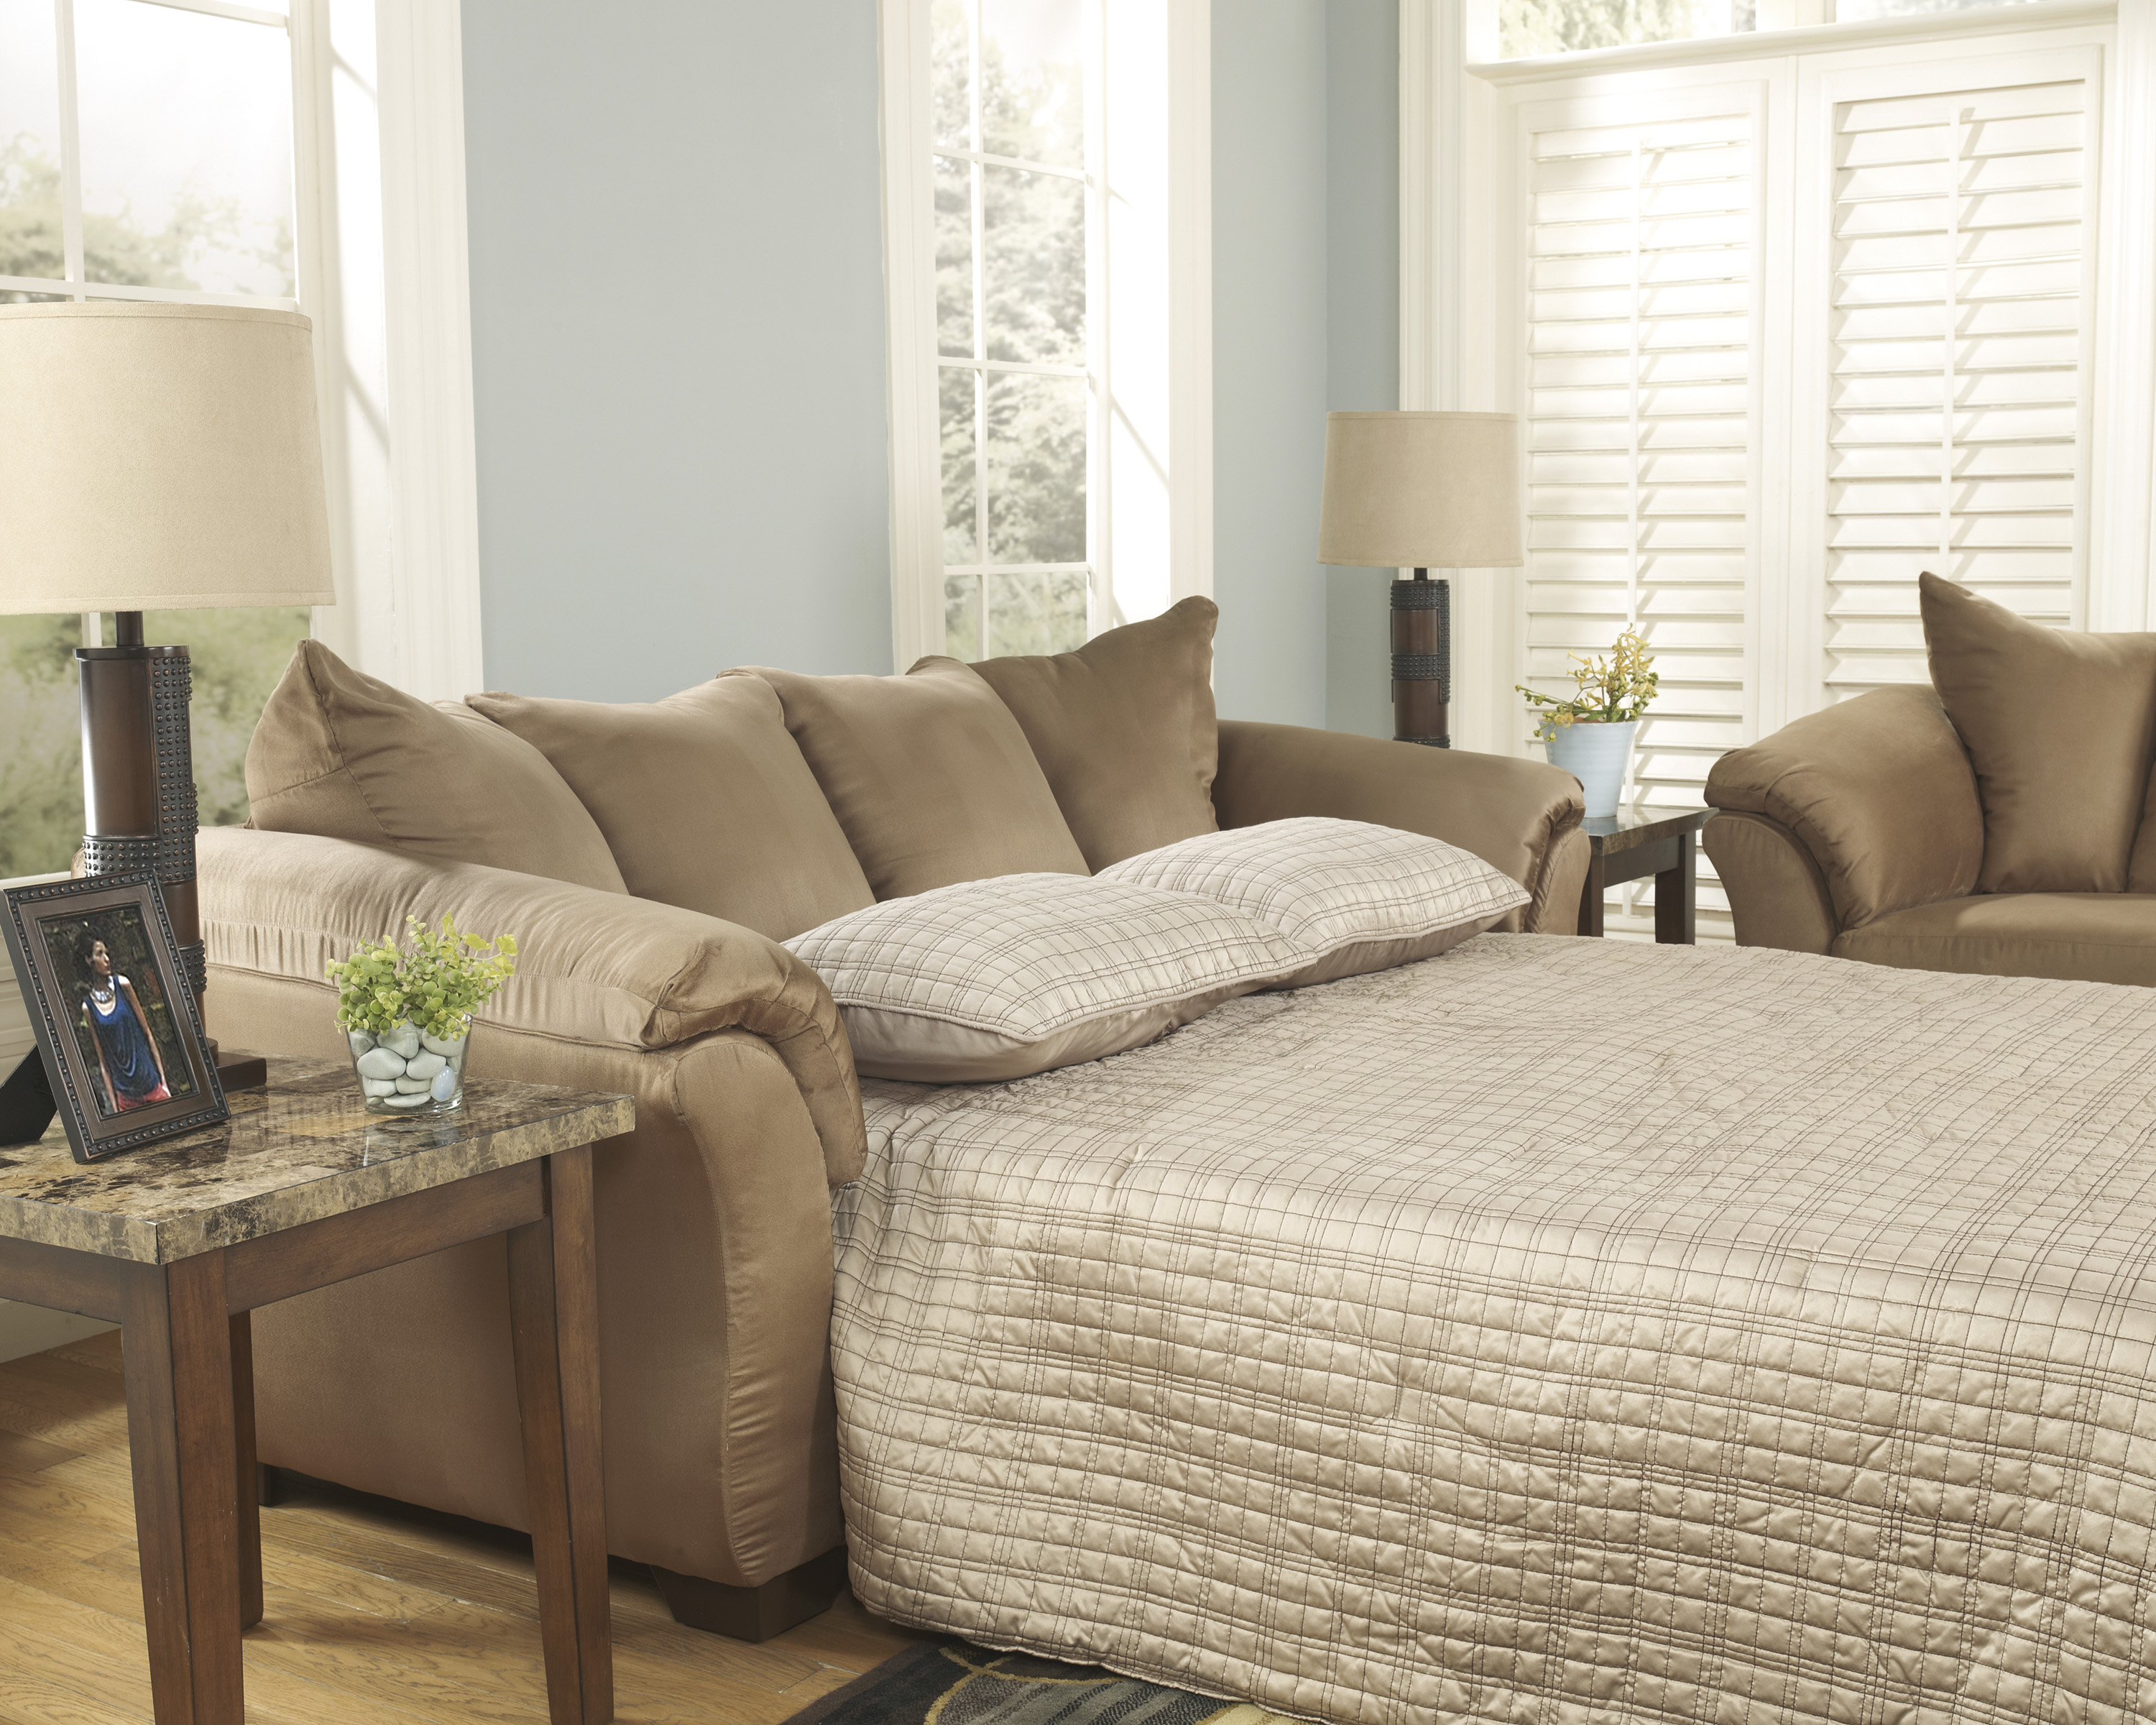 majik sleeper sofa rental in pennsylvania rent to own